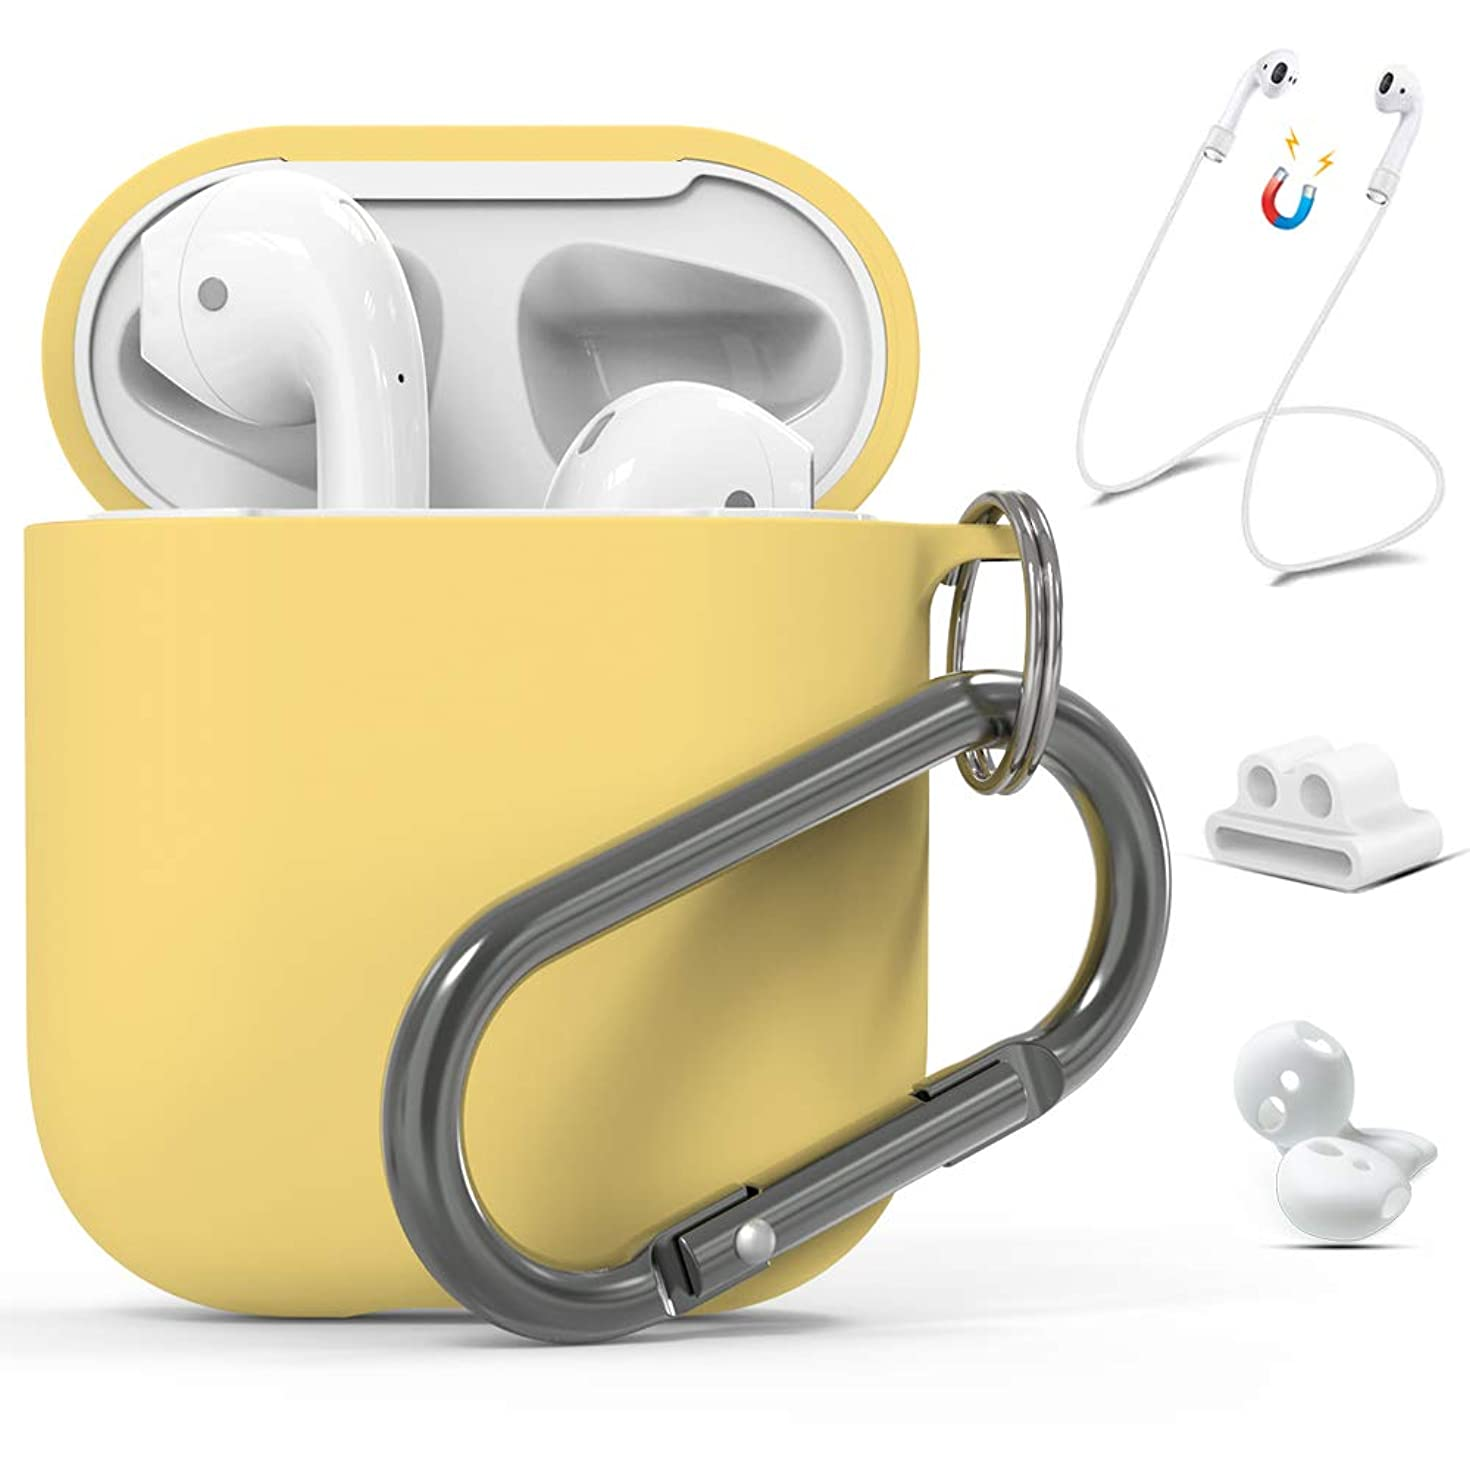 Yellow AirPods Case Silicone Protective Hard Cover Skin for Apple Airpods 1 & 2 Charging Case, 5in1 Accessories Carabiner/Strap/Earhooks/Watch Band Holder by KINGXBAR